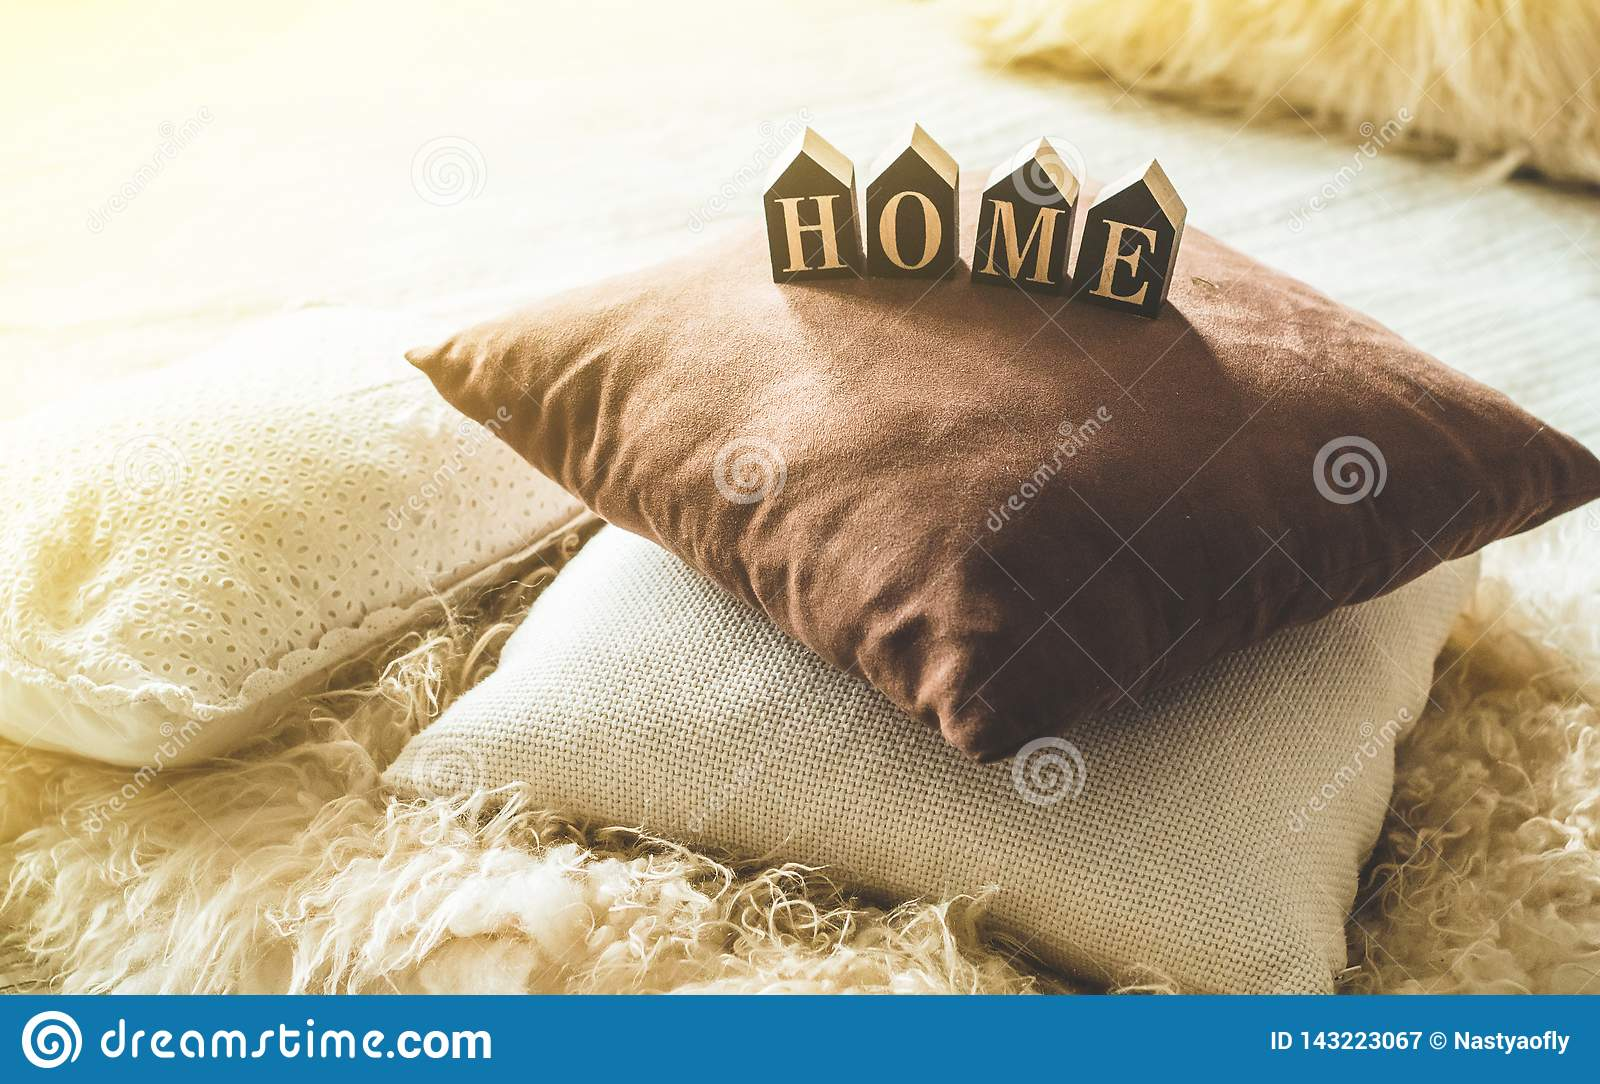 A lot of decorative cozy pillows and the inscription HOME